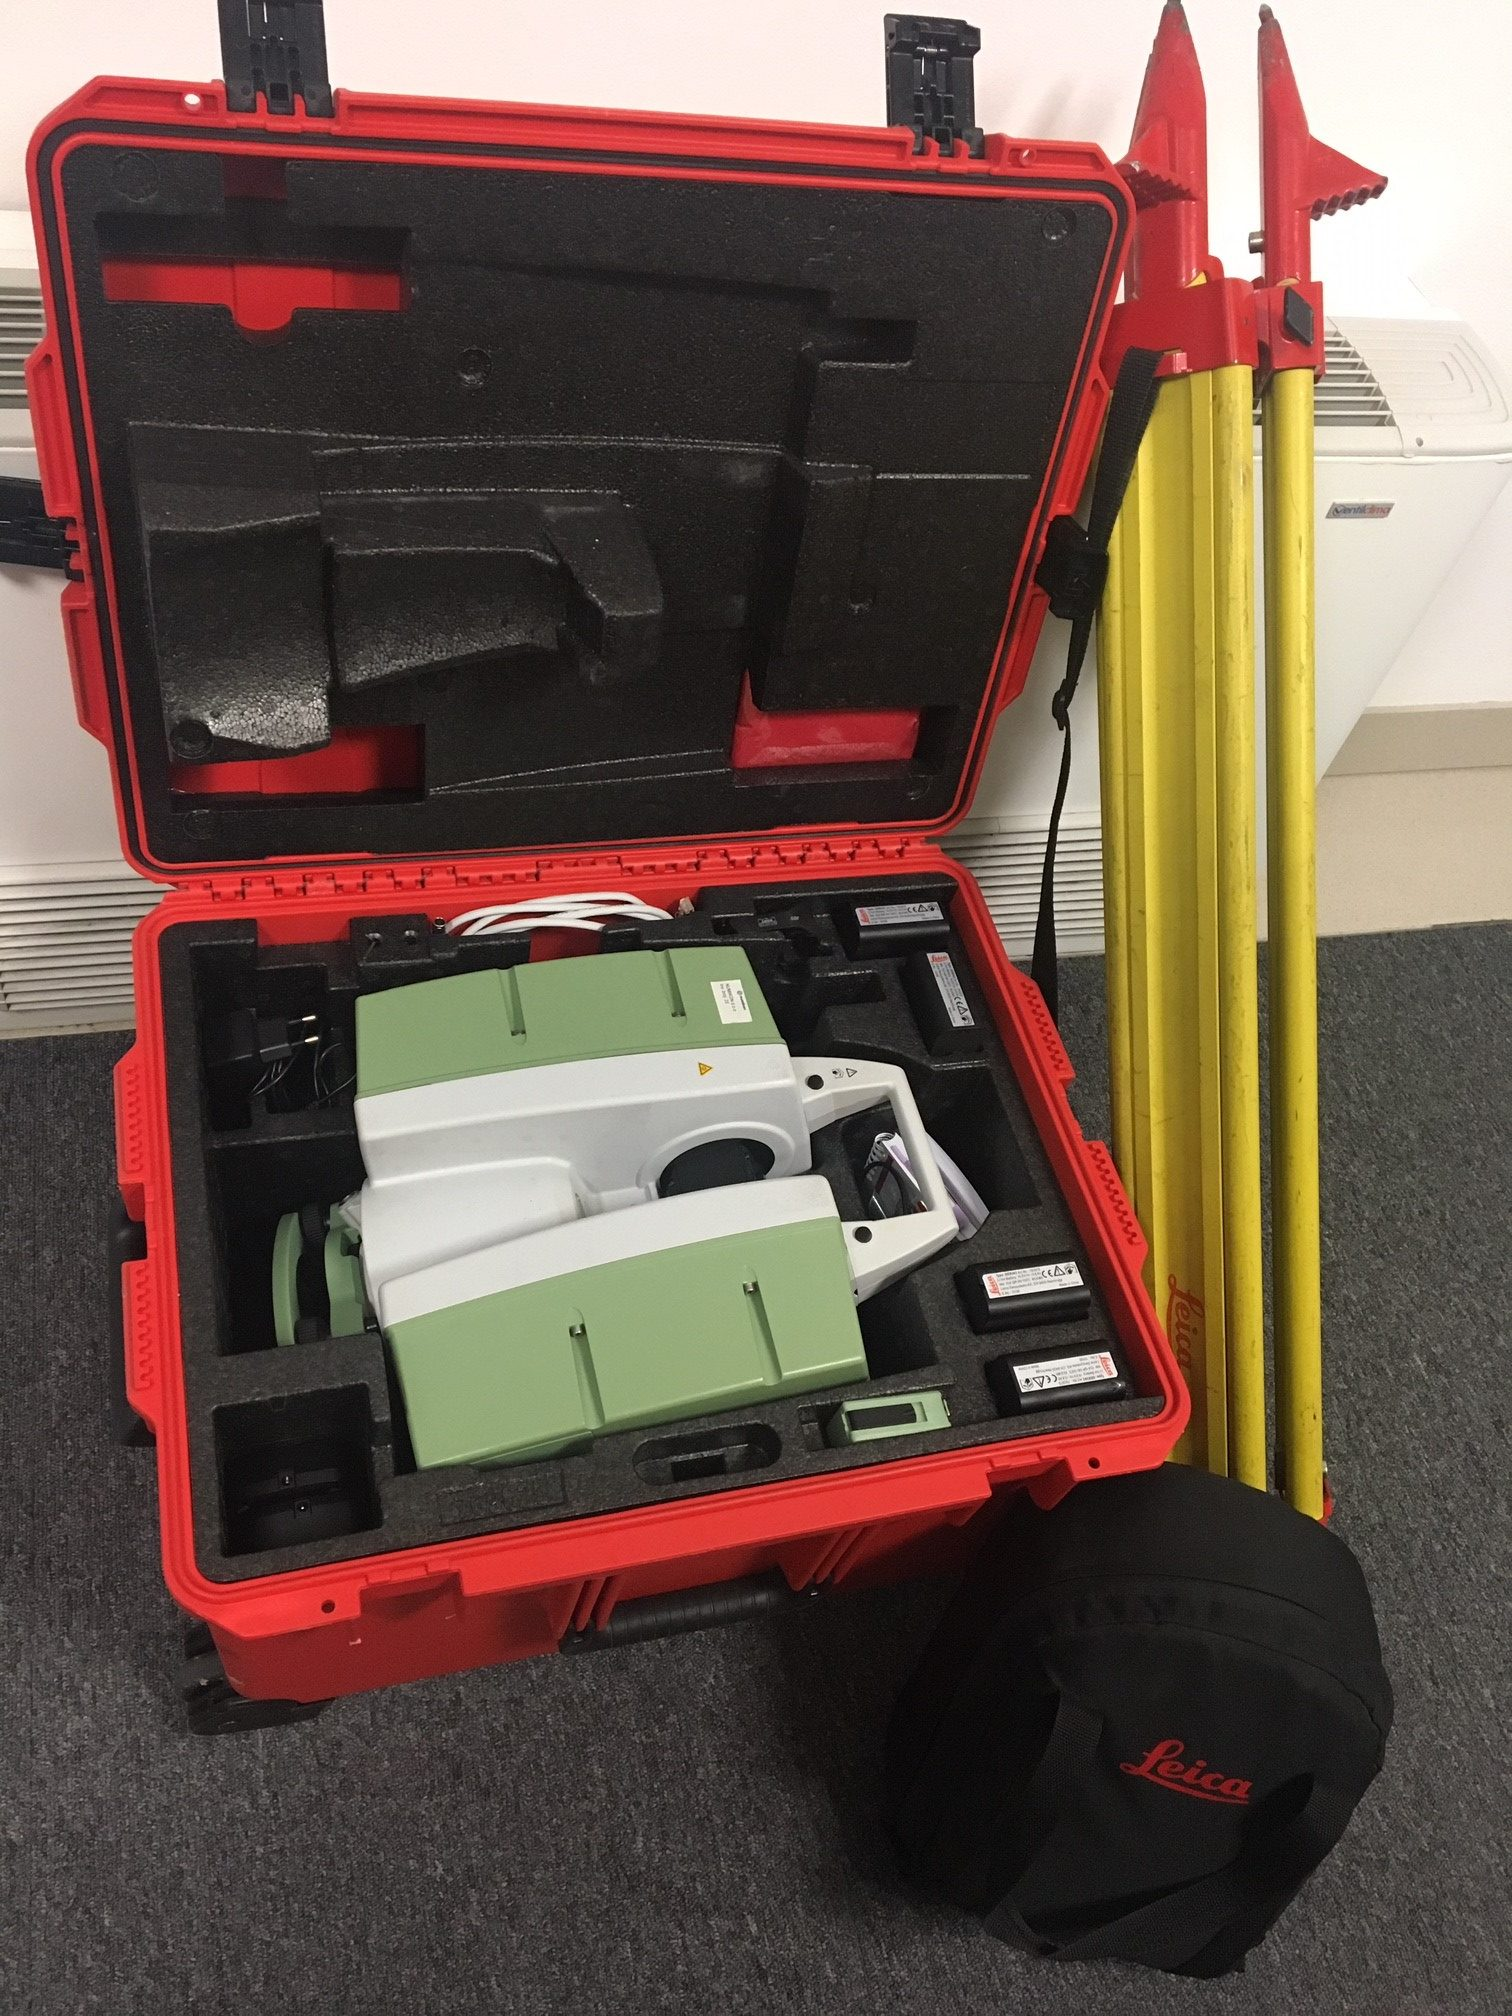 Numikon News: Pre-Owned Leica ScanStation P20 with accessories. For SALE!